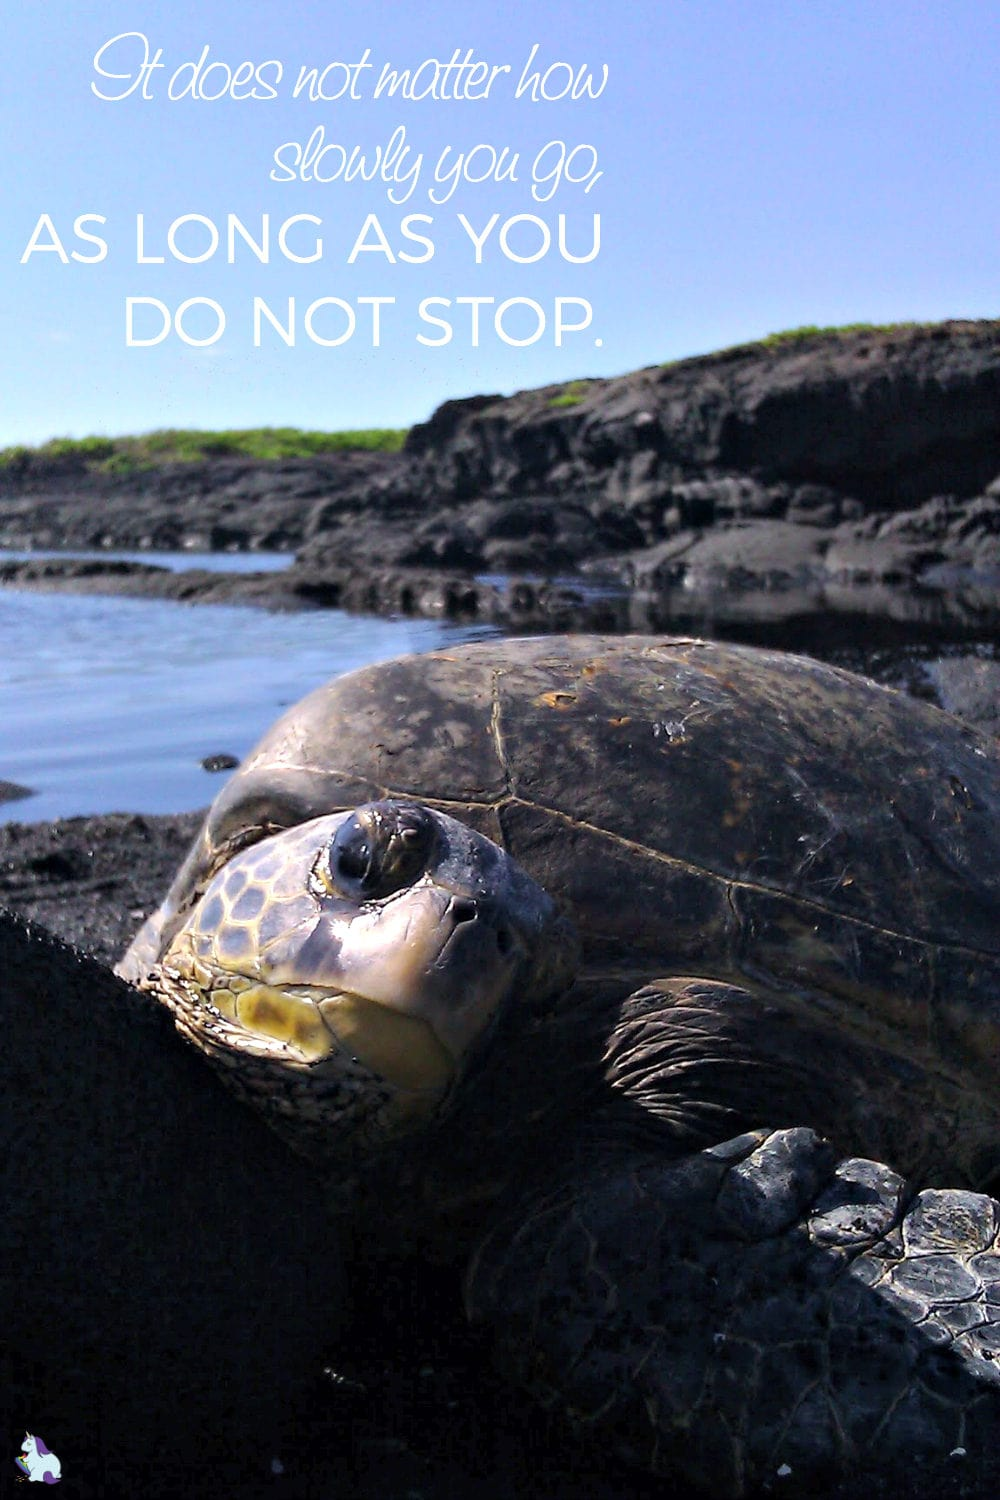 Sea Turtle Wisdom: Never give up. Just Keep Swimming.